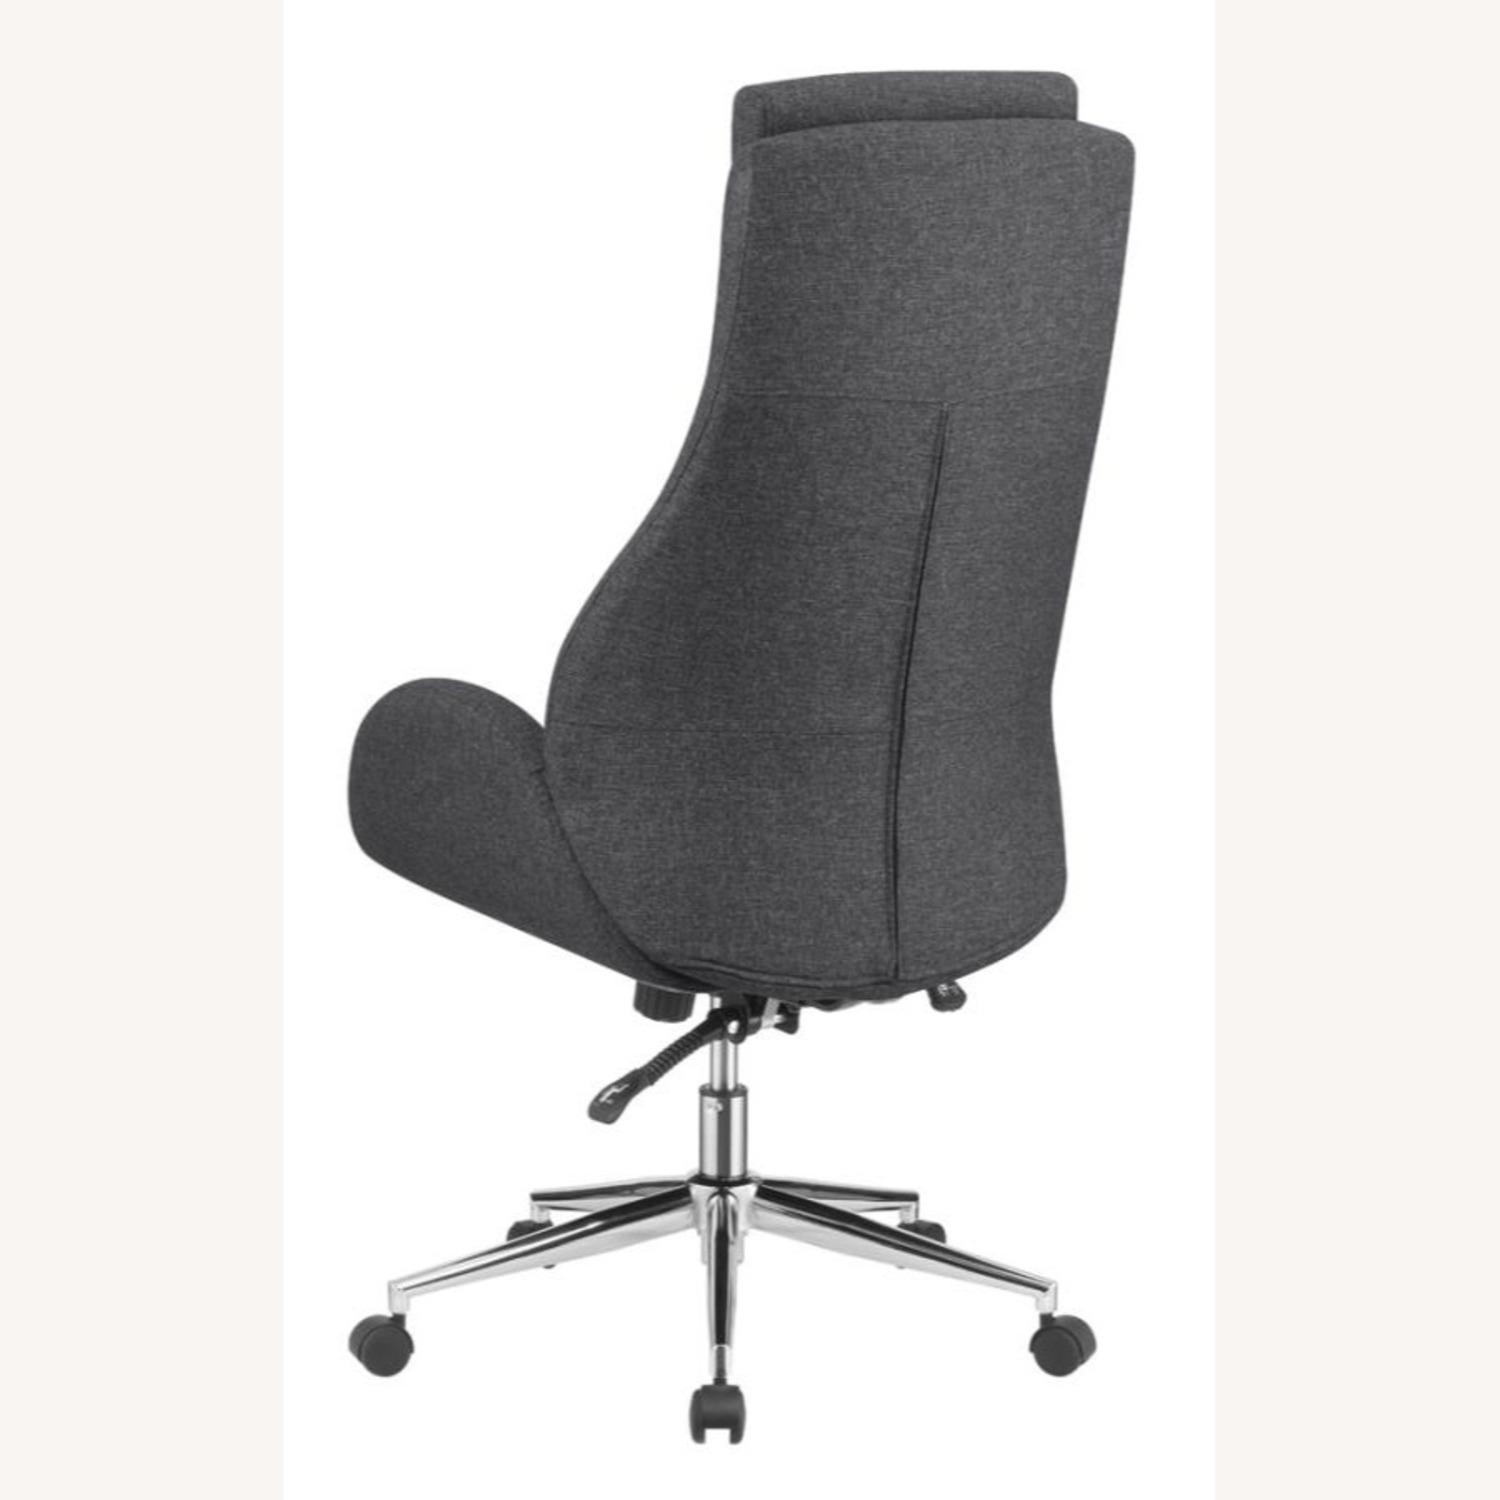 Office Chair In Grey Finish W/ Chrome Metal Base - image-3